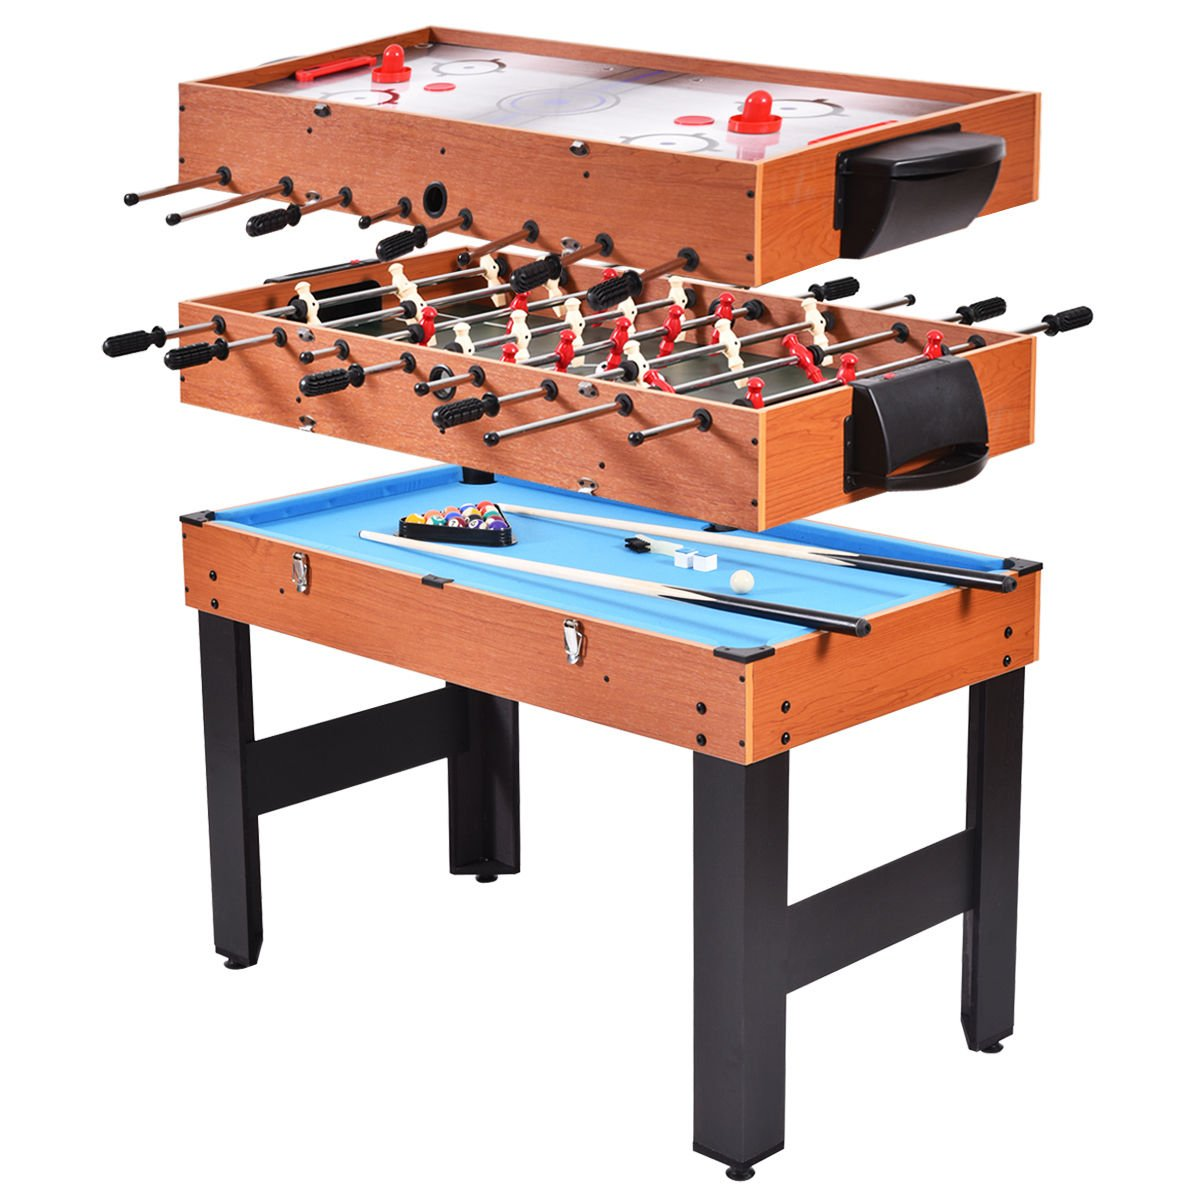 Amazoncom New In Multi Combo Game Table Foosball Soccer - Gamepower foosball table